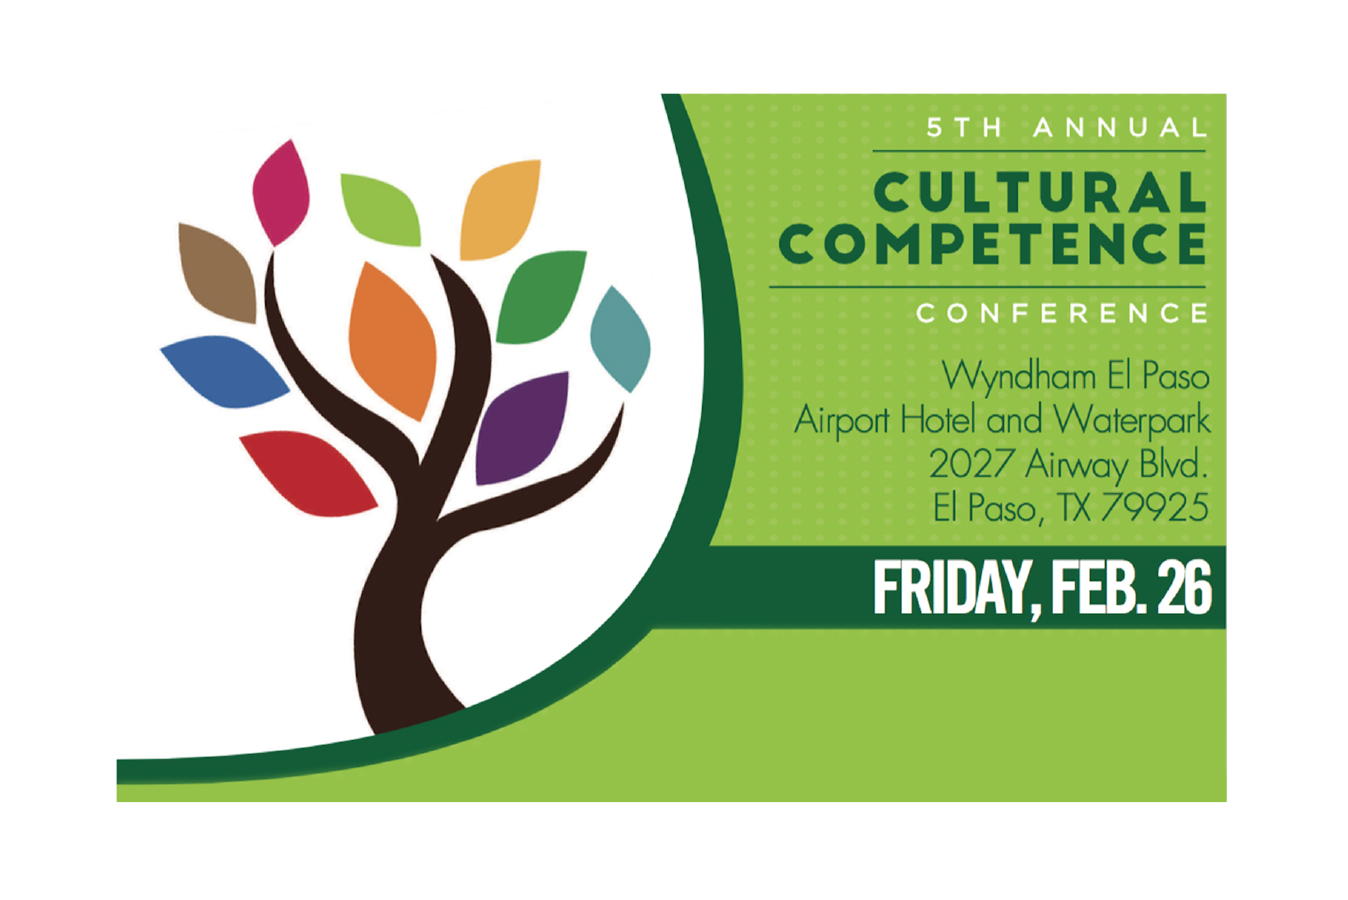 Fifth Annual Cultural Competence Conference